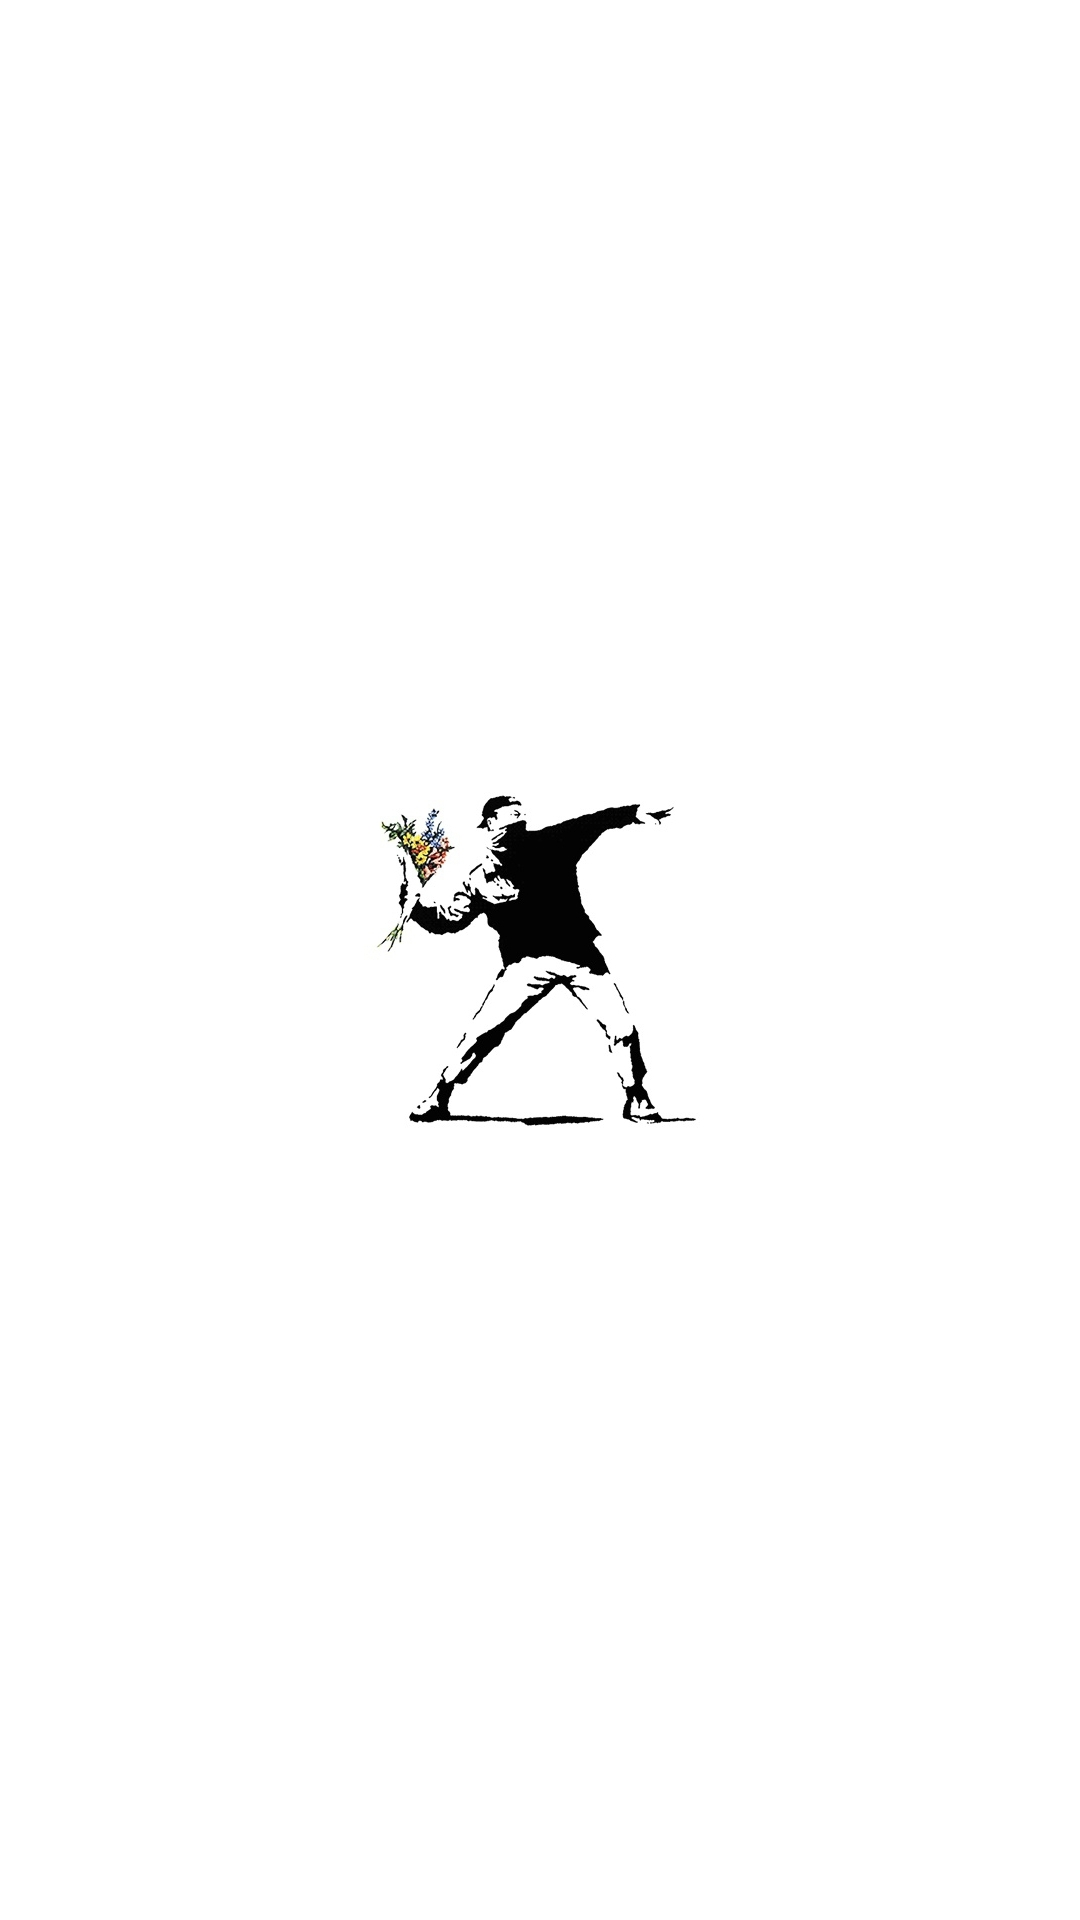 iPhone wallpaper banksy throw flowers 3Wallpapers : notre sélection de fonds d'écran du 10/04/2018